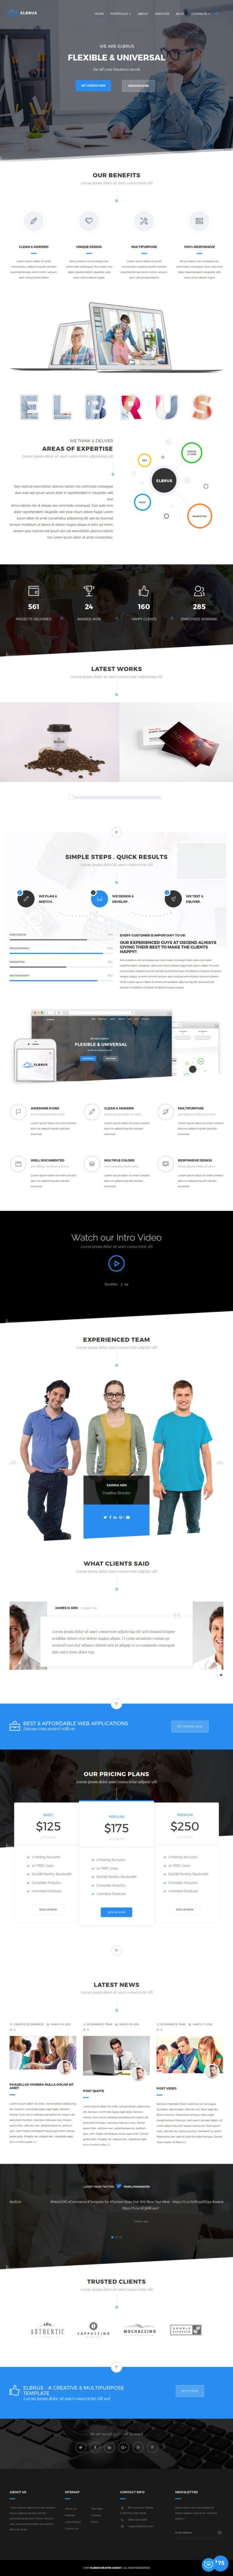 elbrus template monster wordpress theme 01 550x6087 - Elbrus WordPress Theme